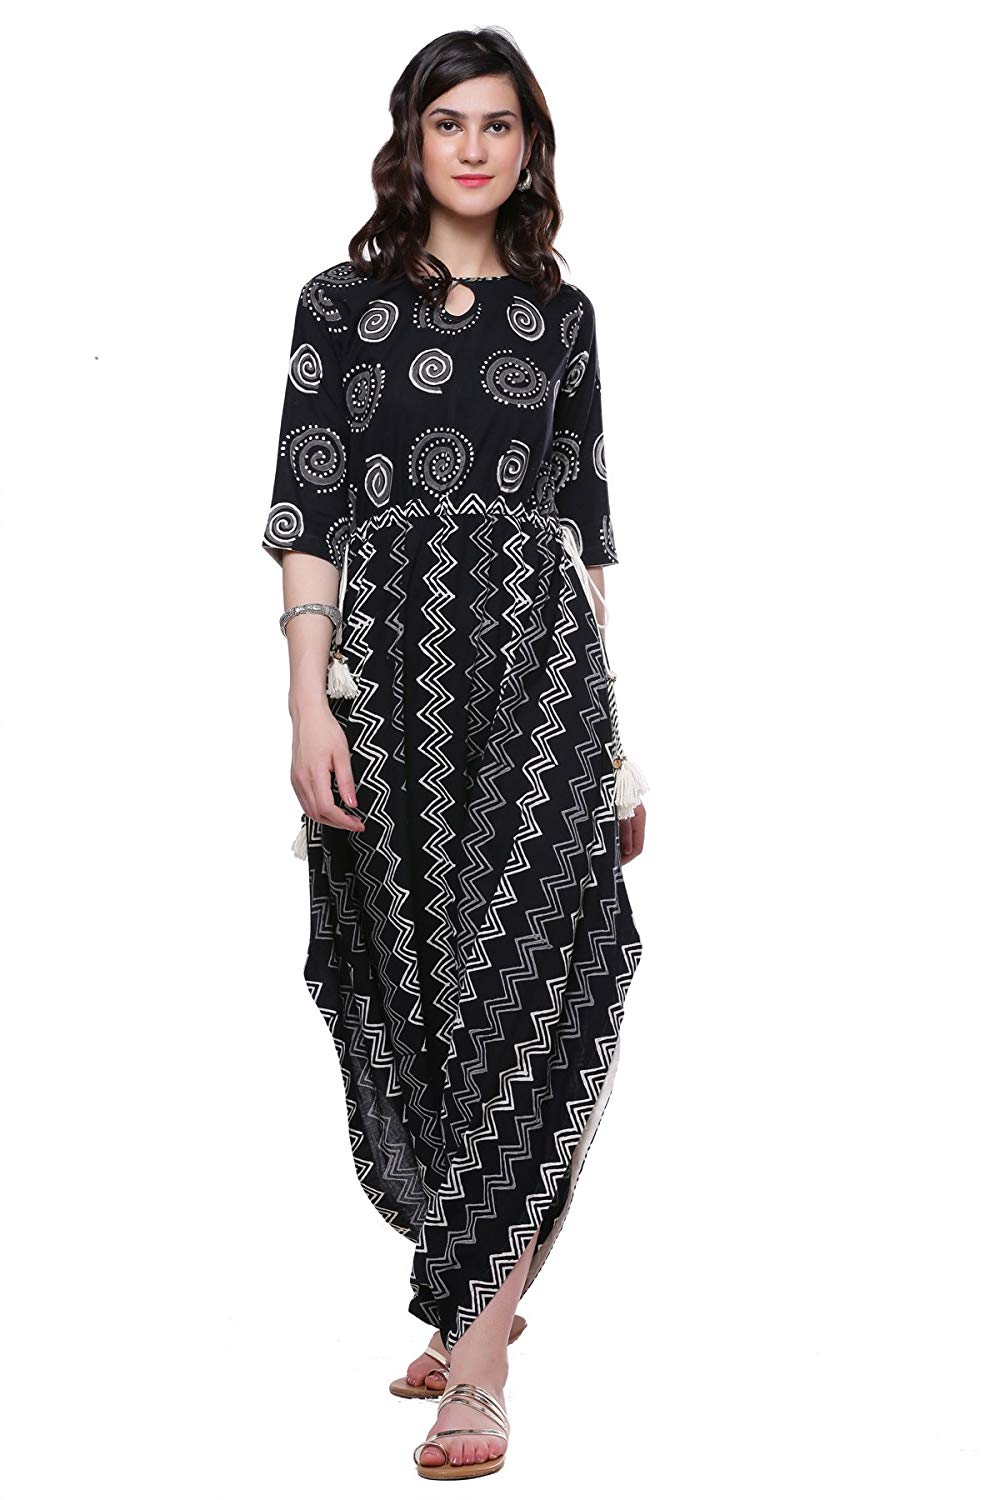 Black Cotton Dhoti Style Kurta Dress For Women's - BohoEntice